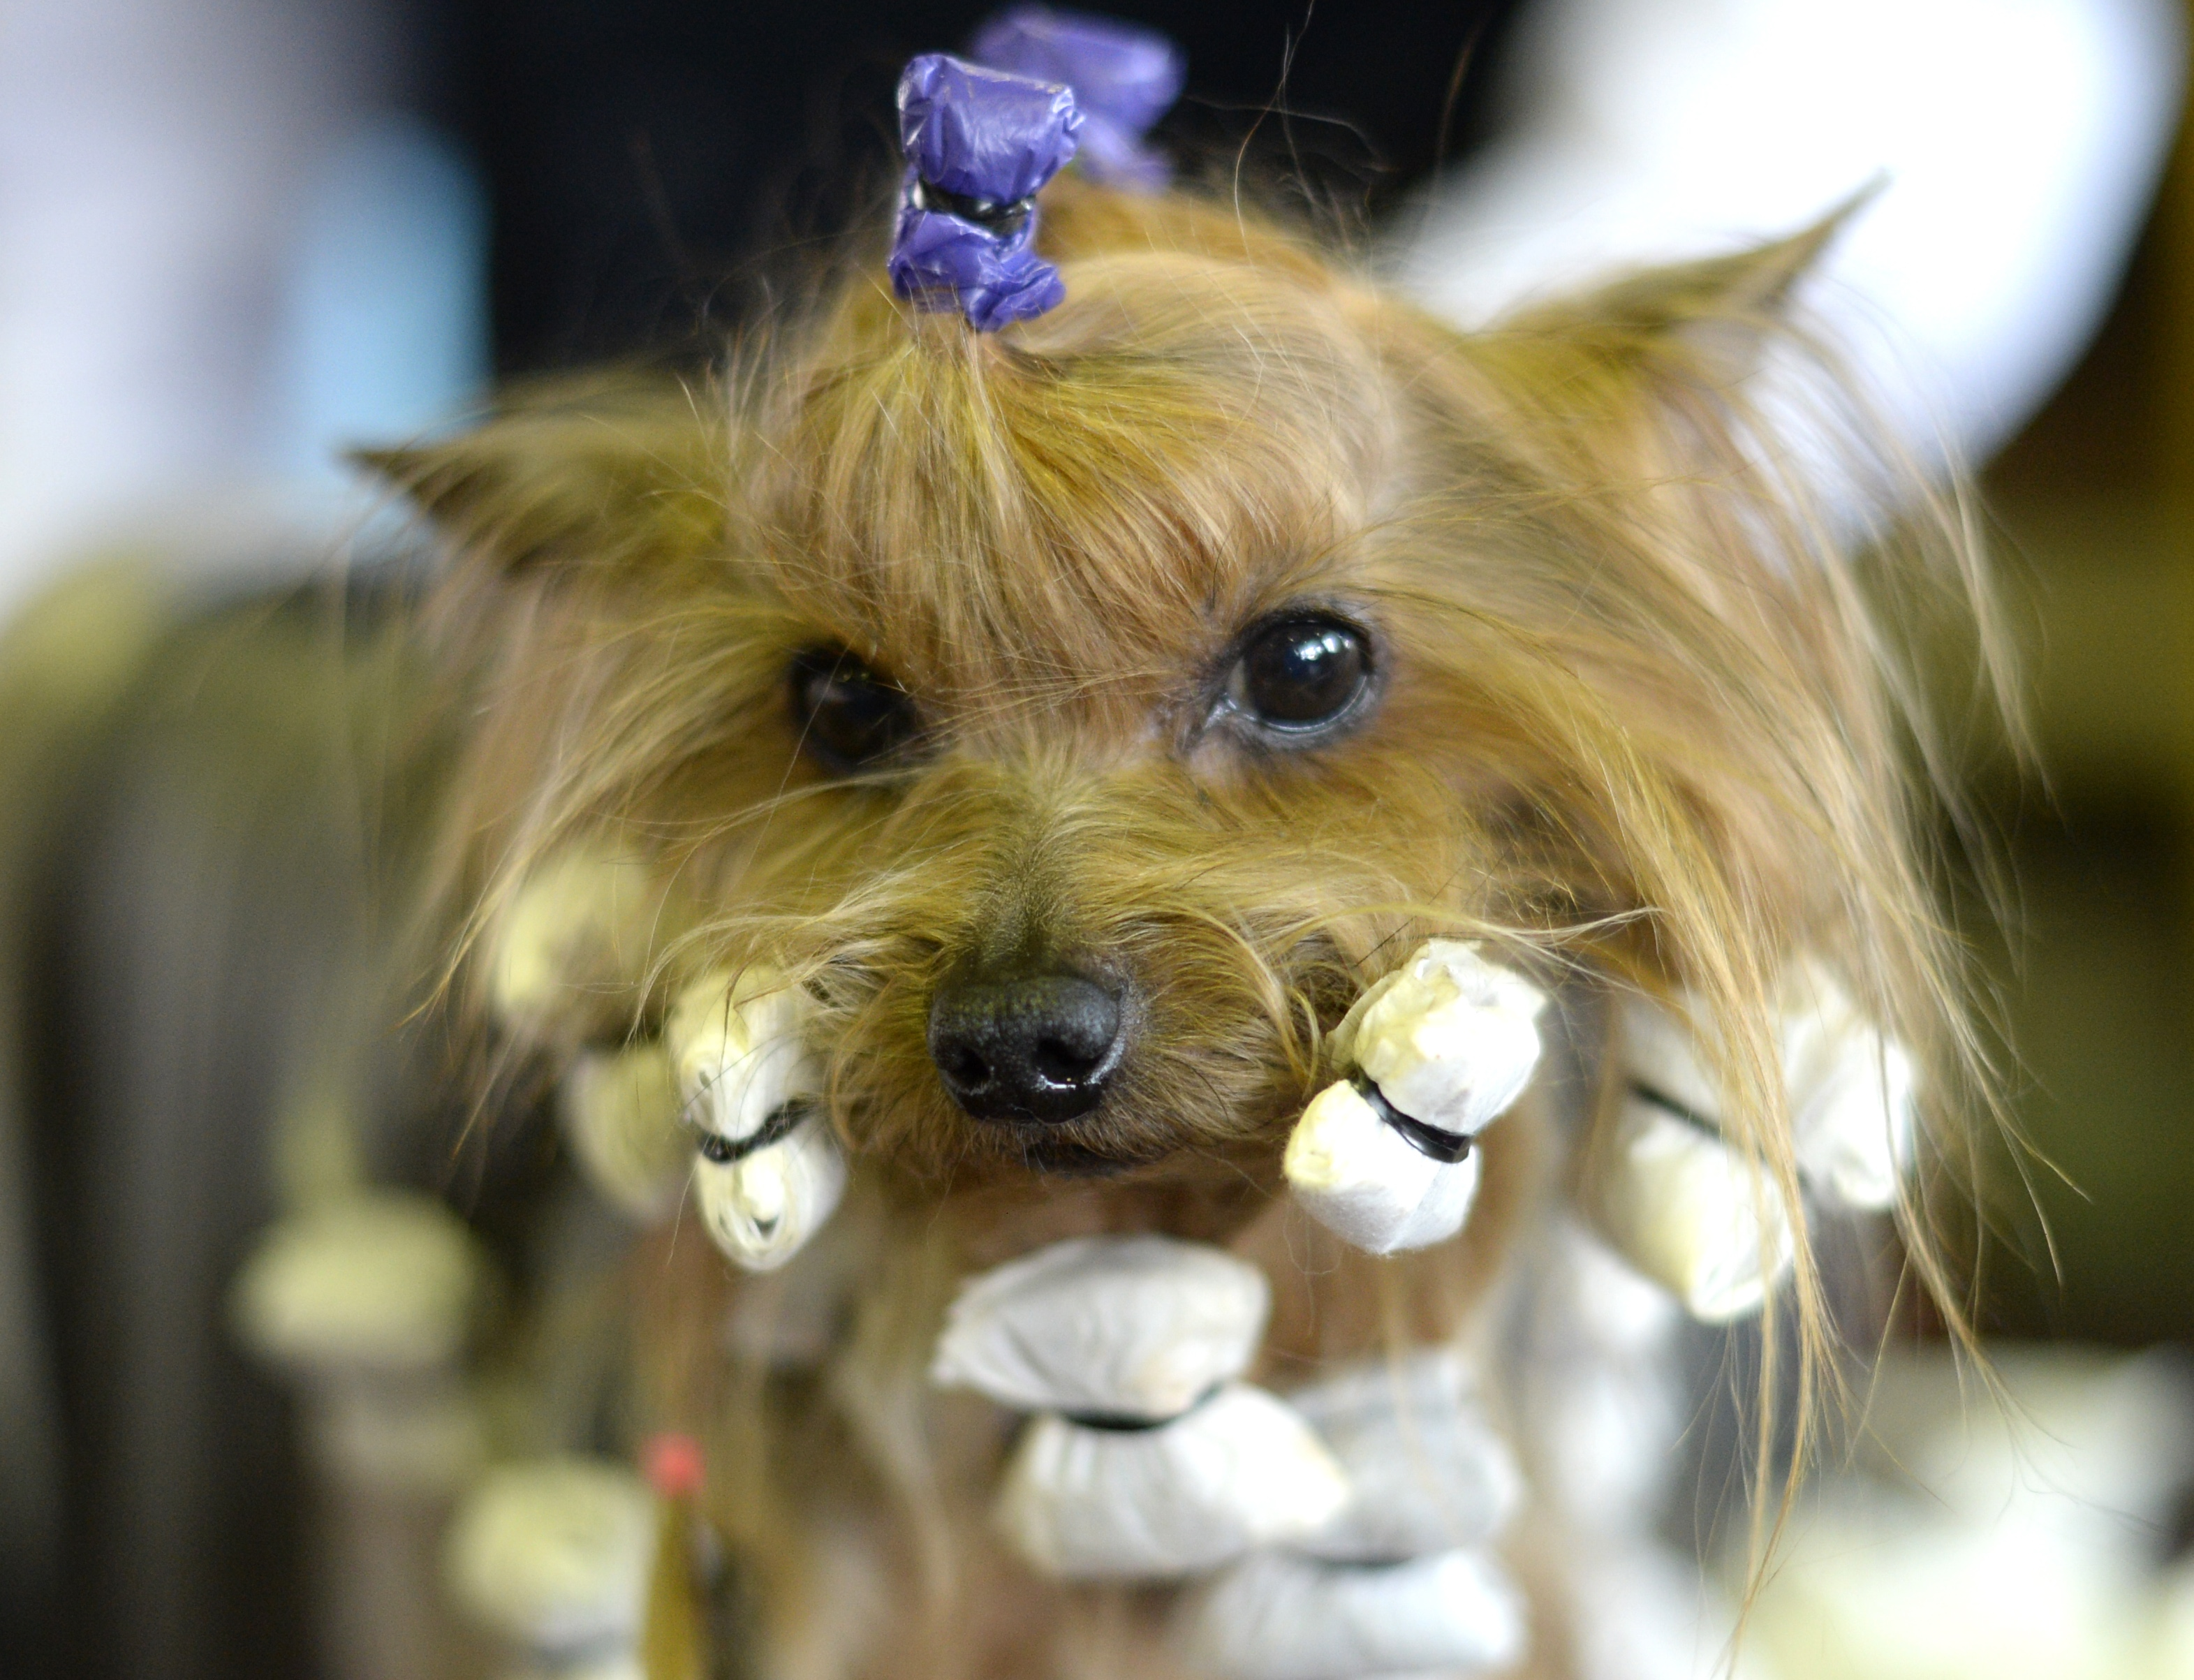 New York - Pooches prep for Westminster dog show ...